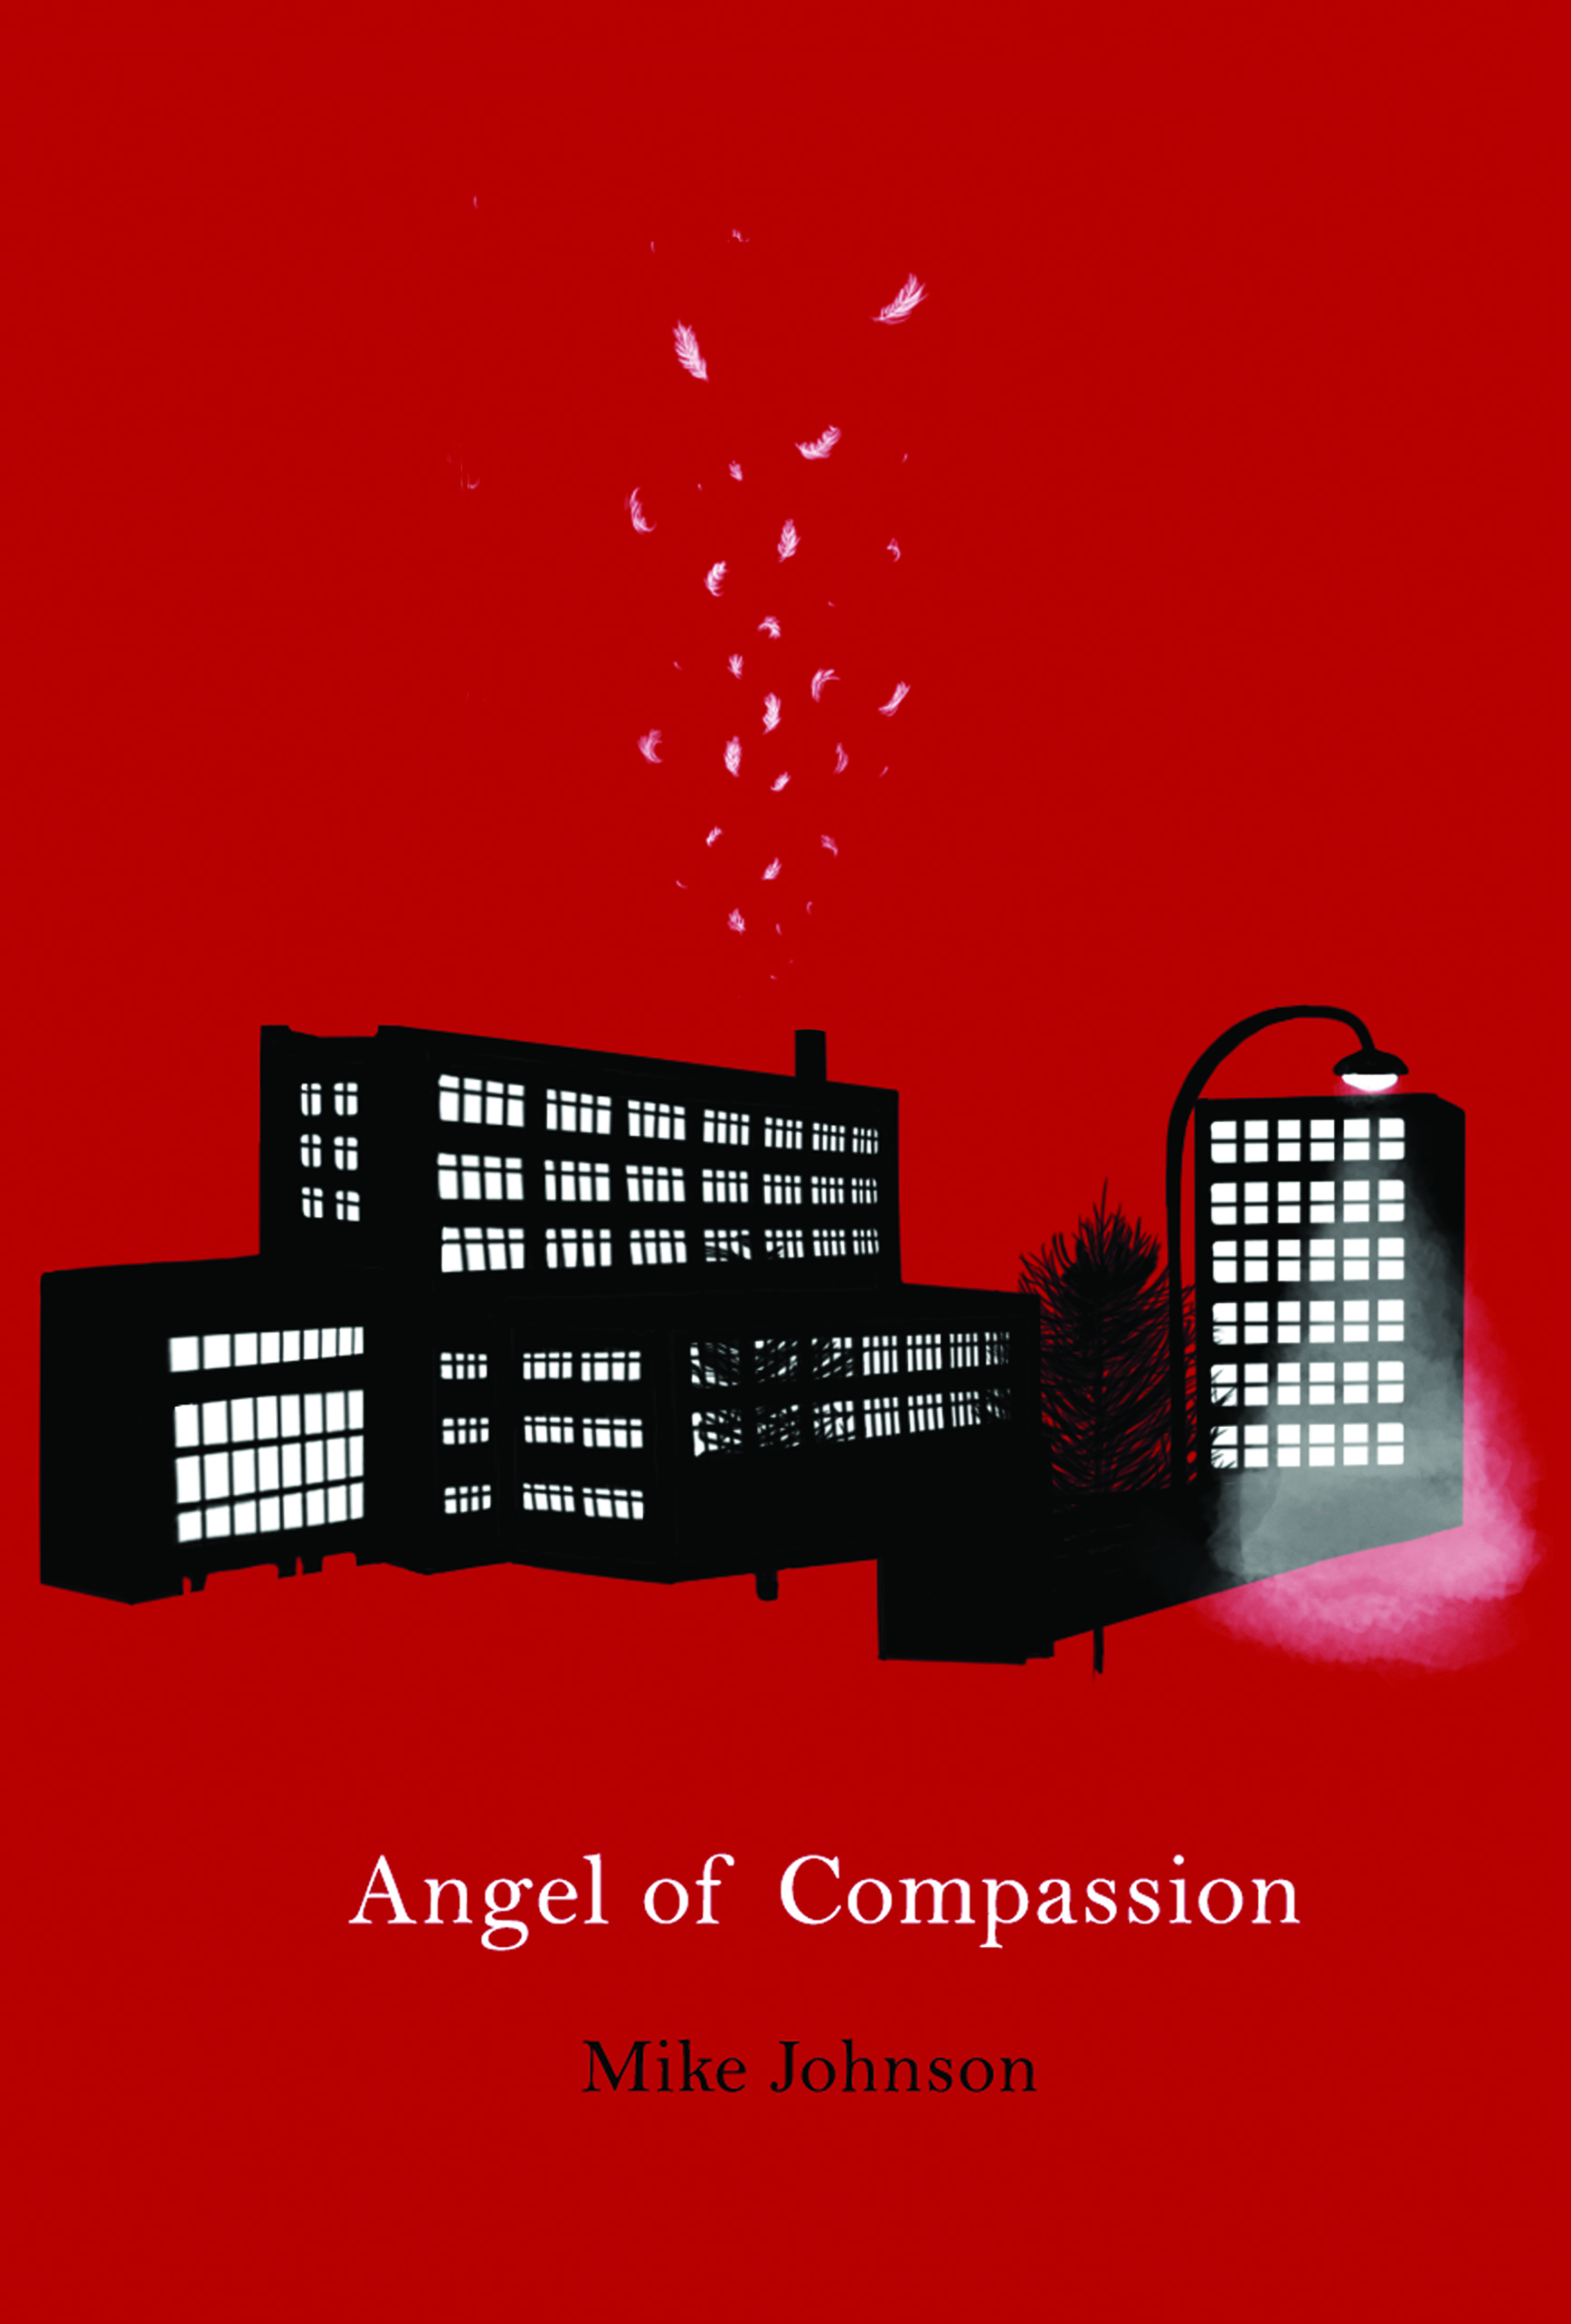 Angel of Compassion  :a chronicle of Mike's recent healing journey.